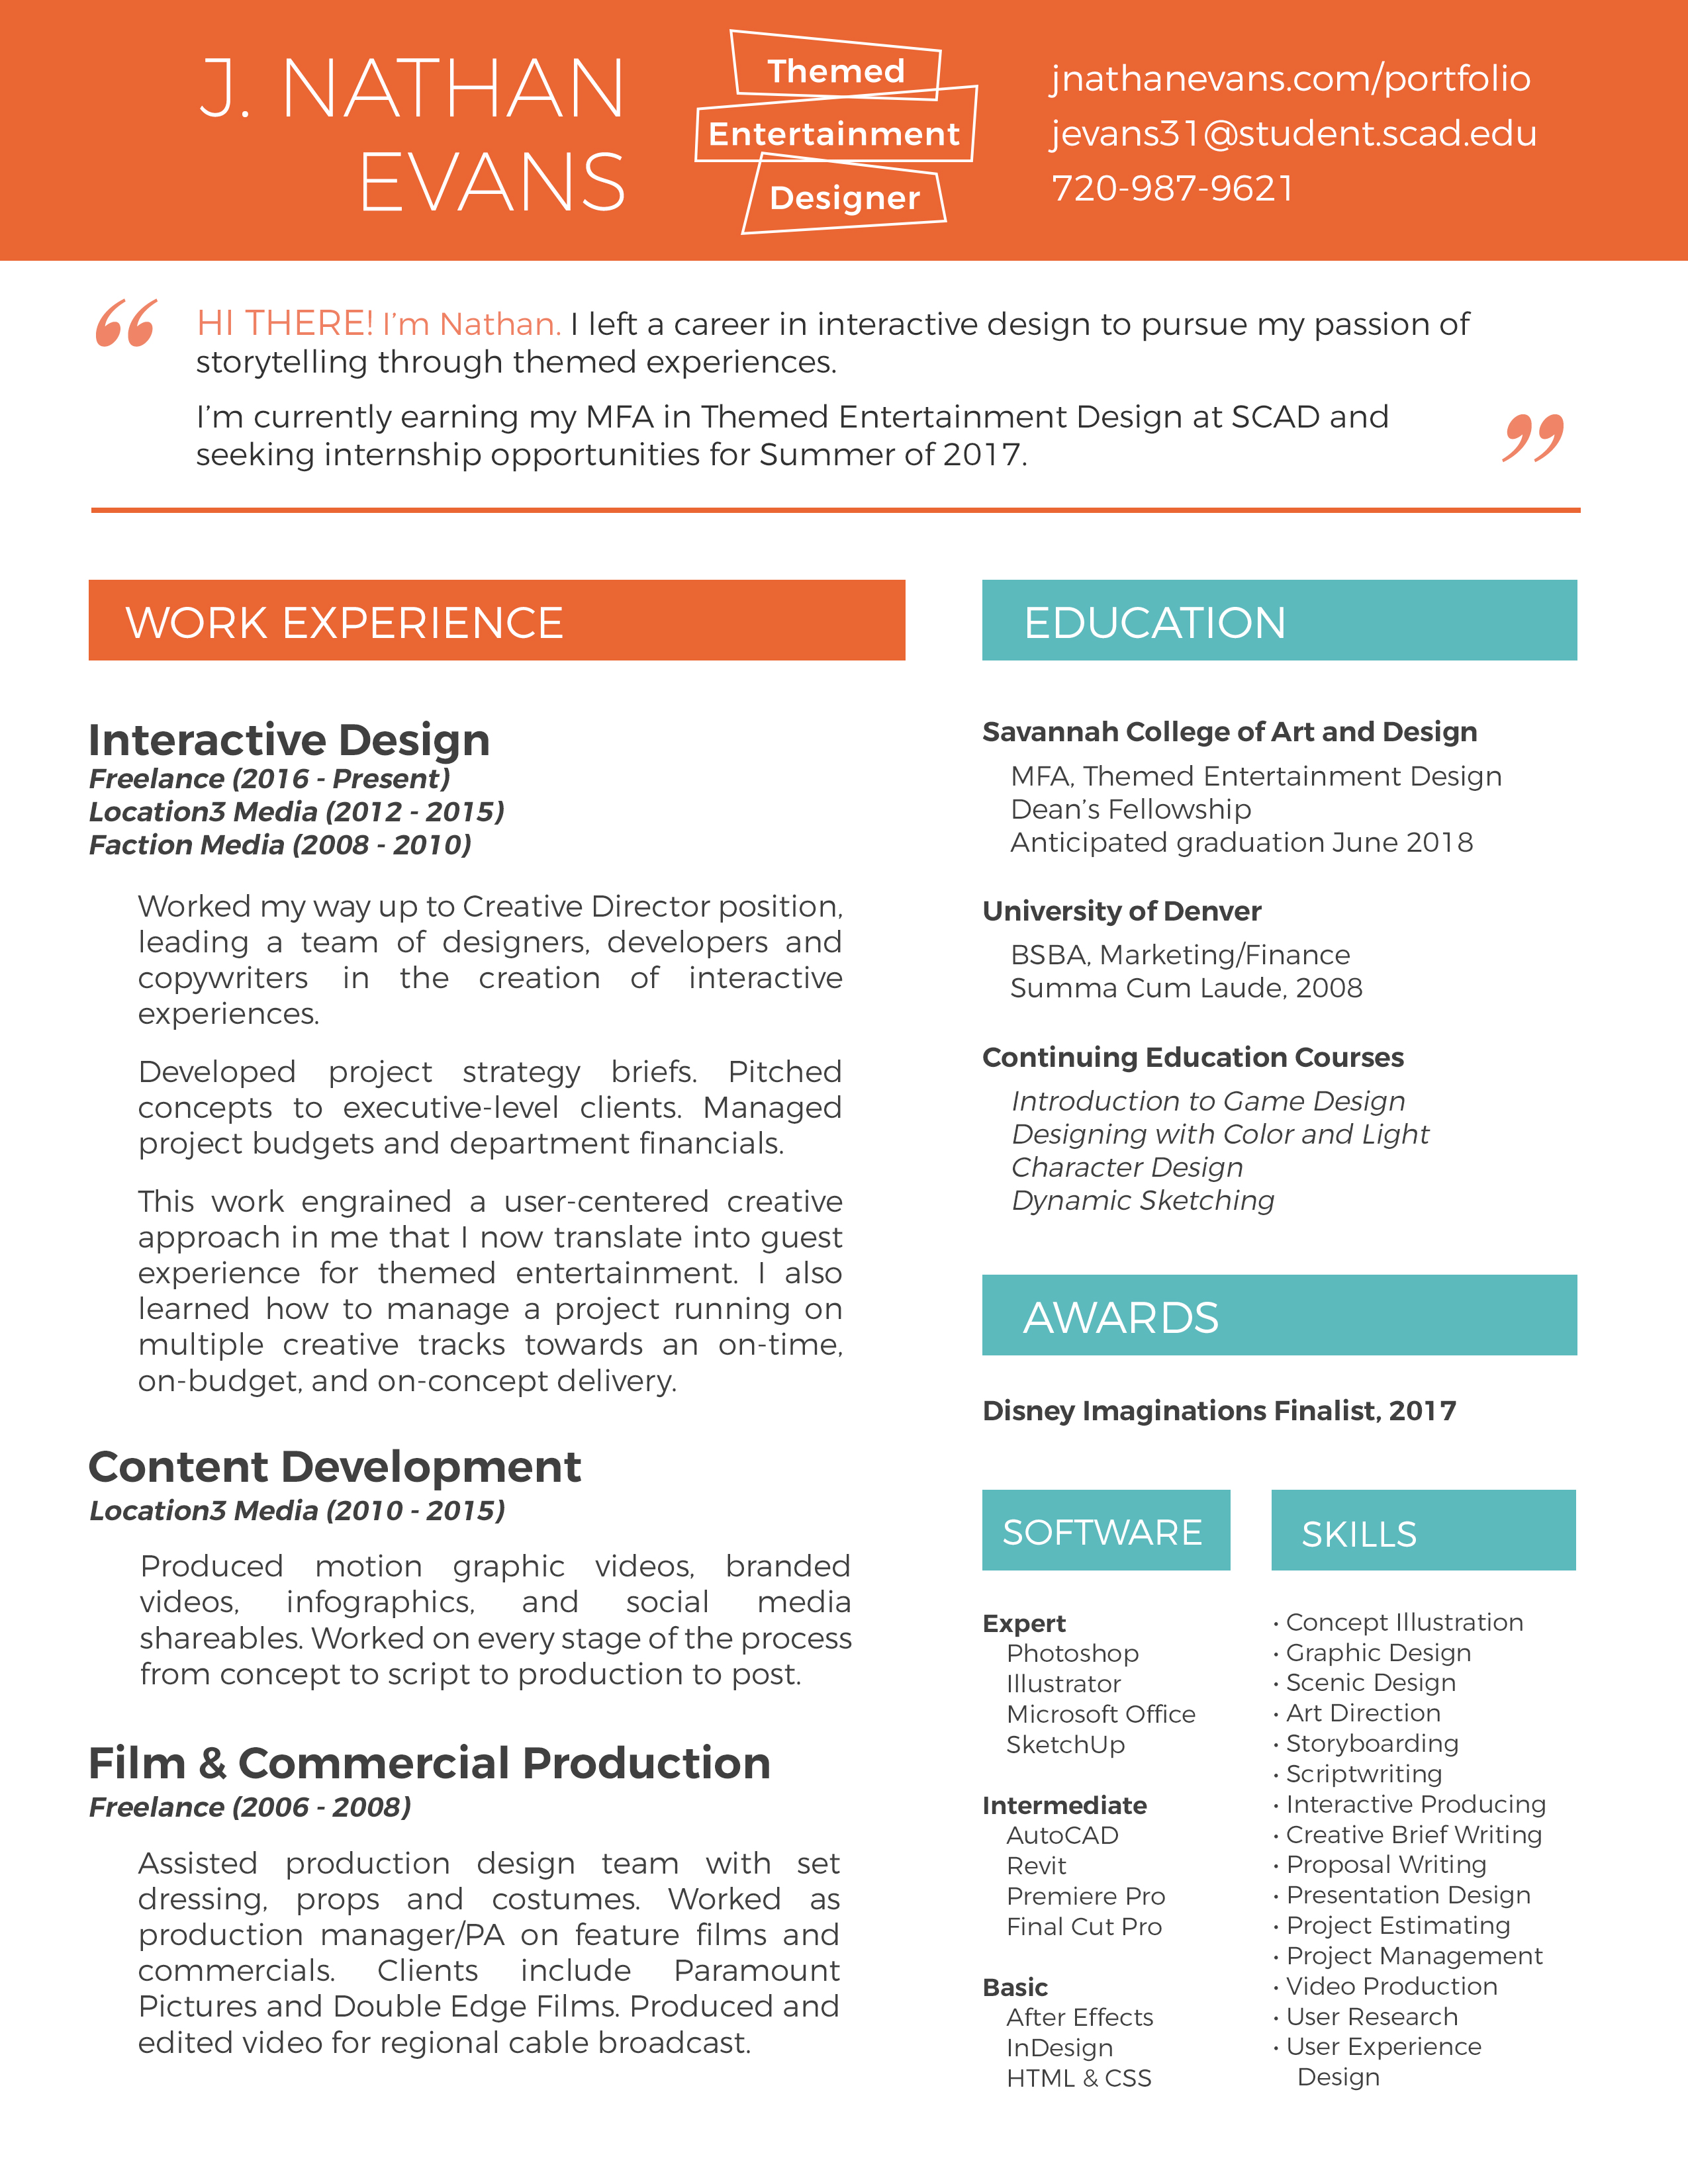 Textile Production Artist Resume Samples  Production Artist Resume